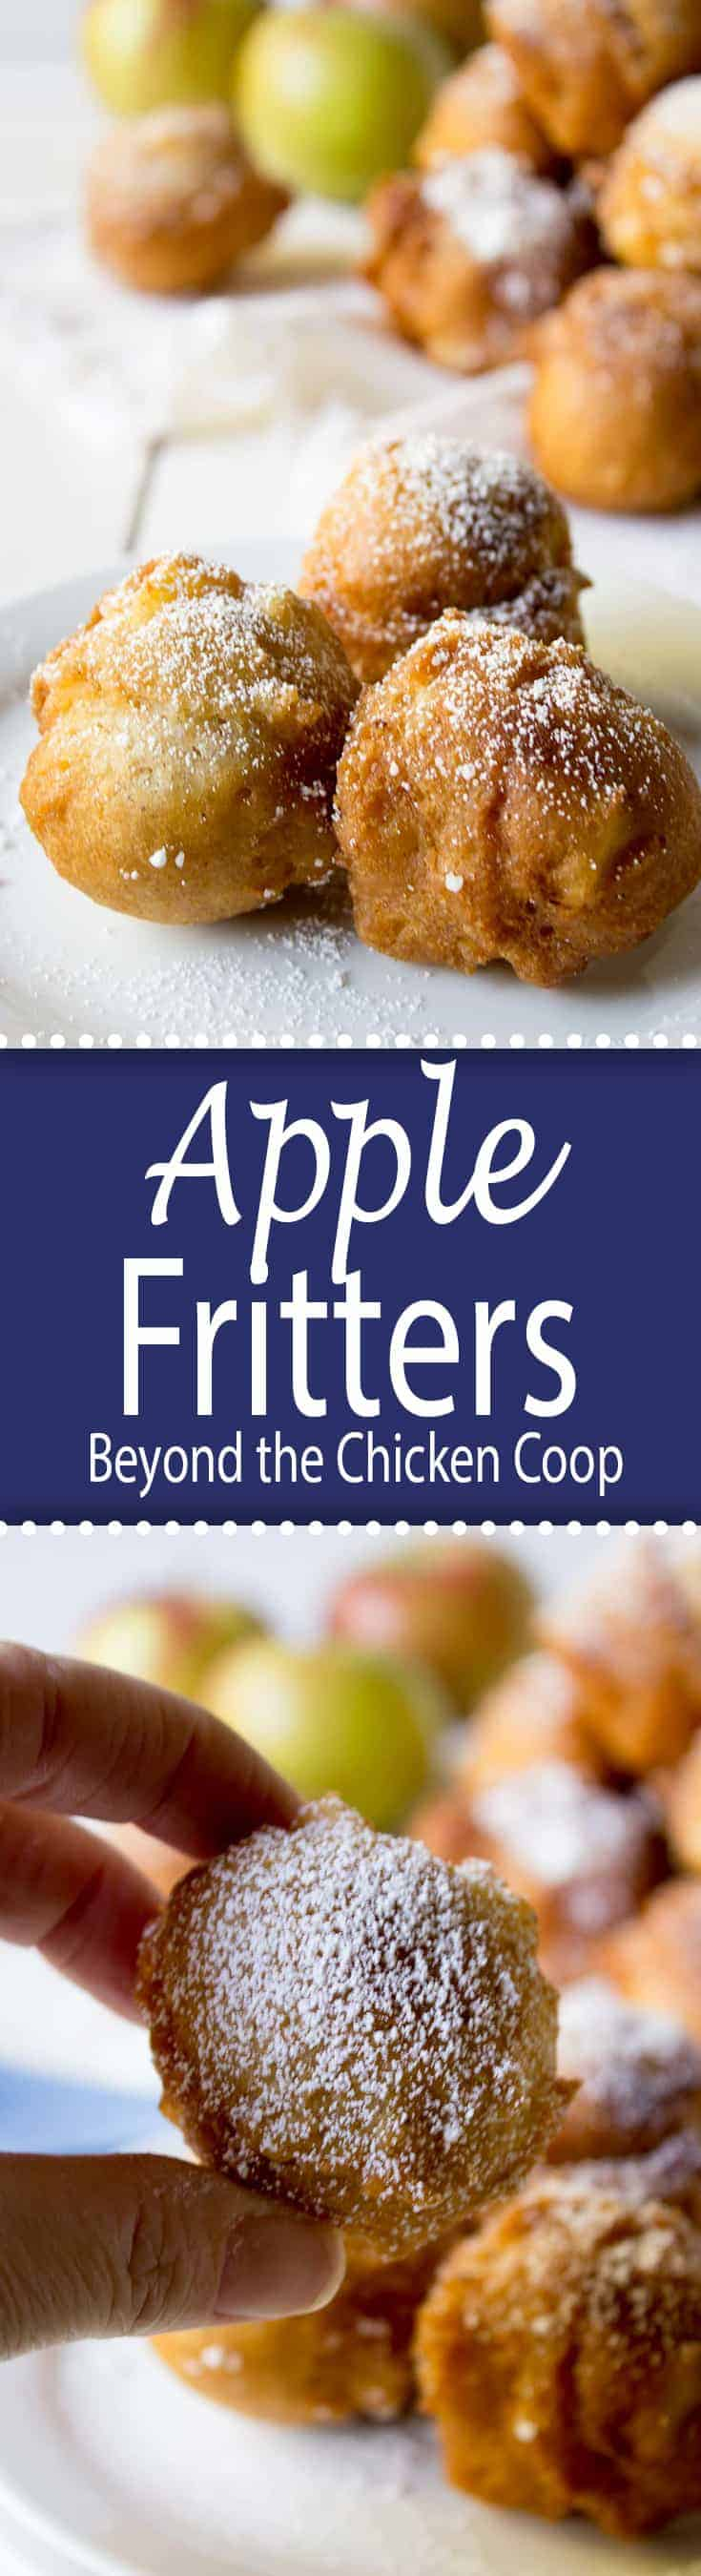 Homemade apple fritters just bursting with bits of apples.